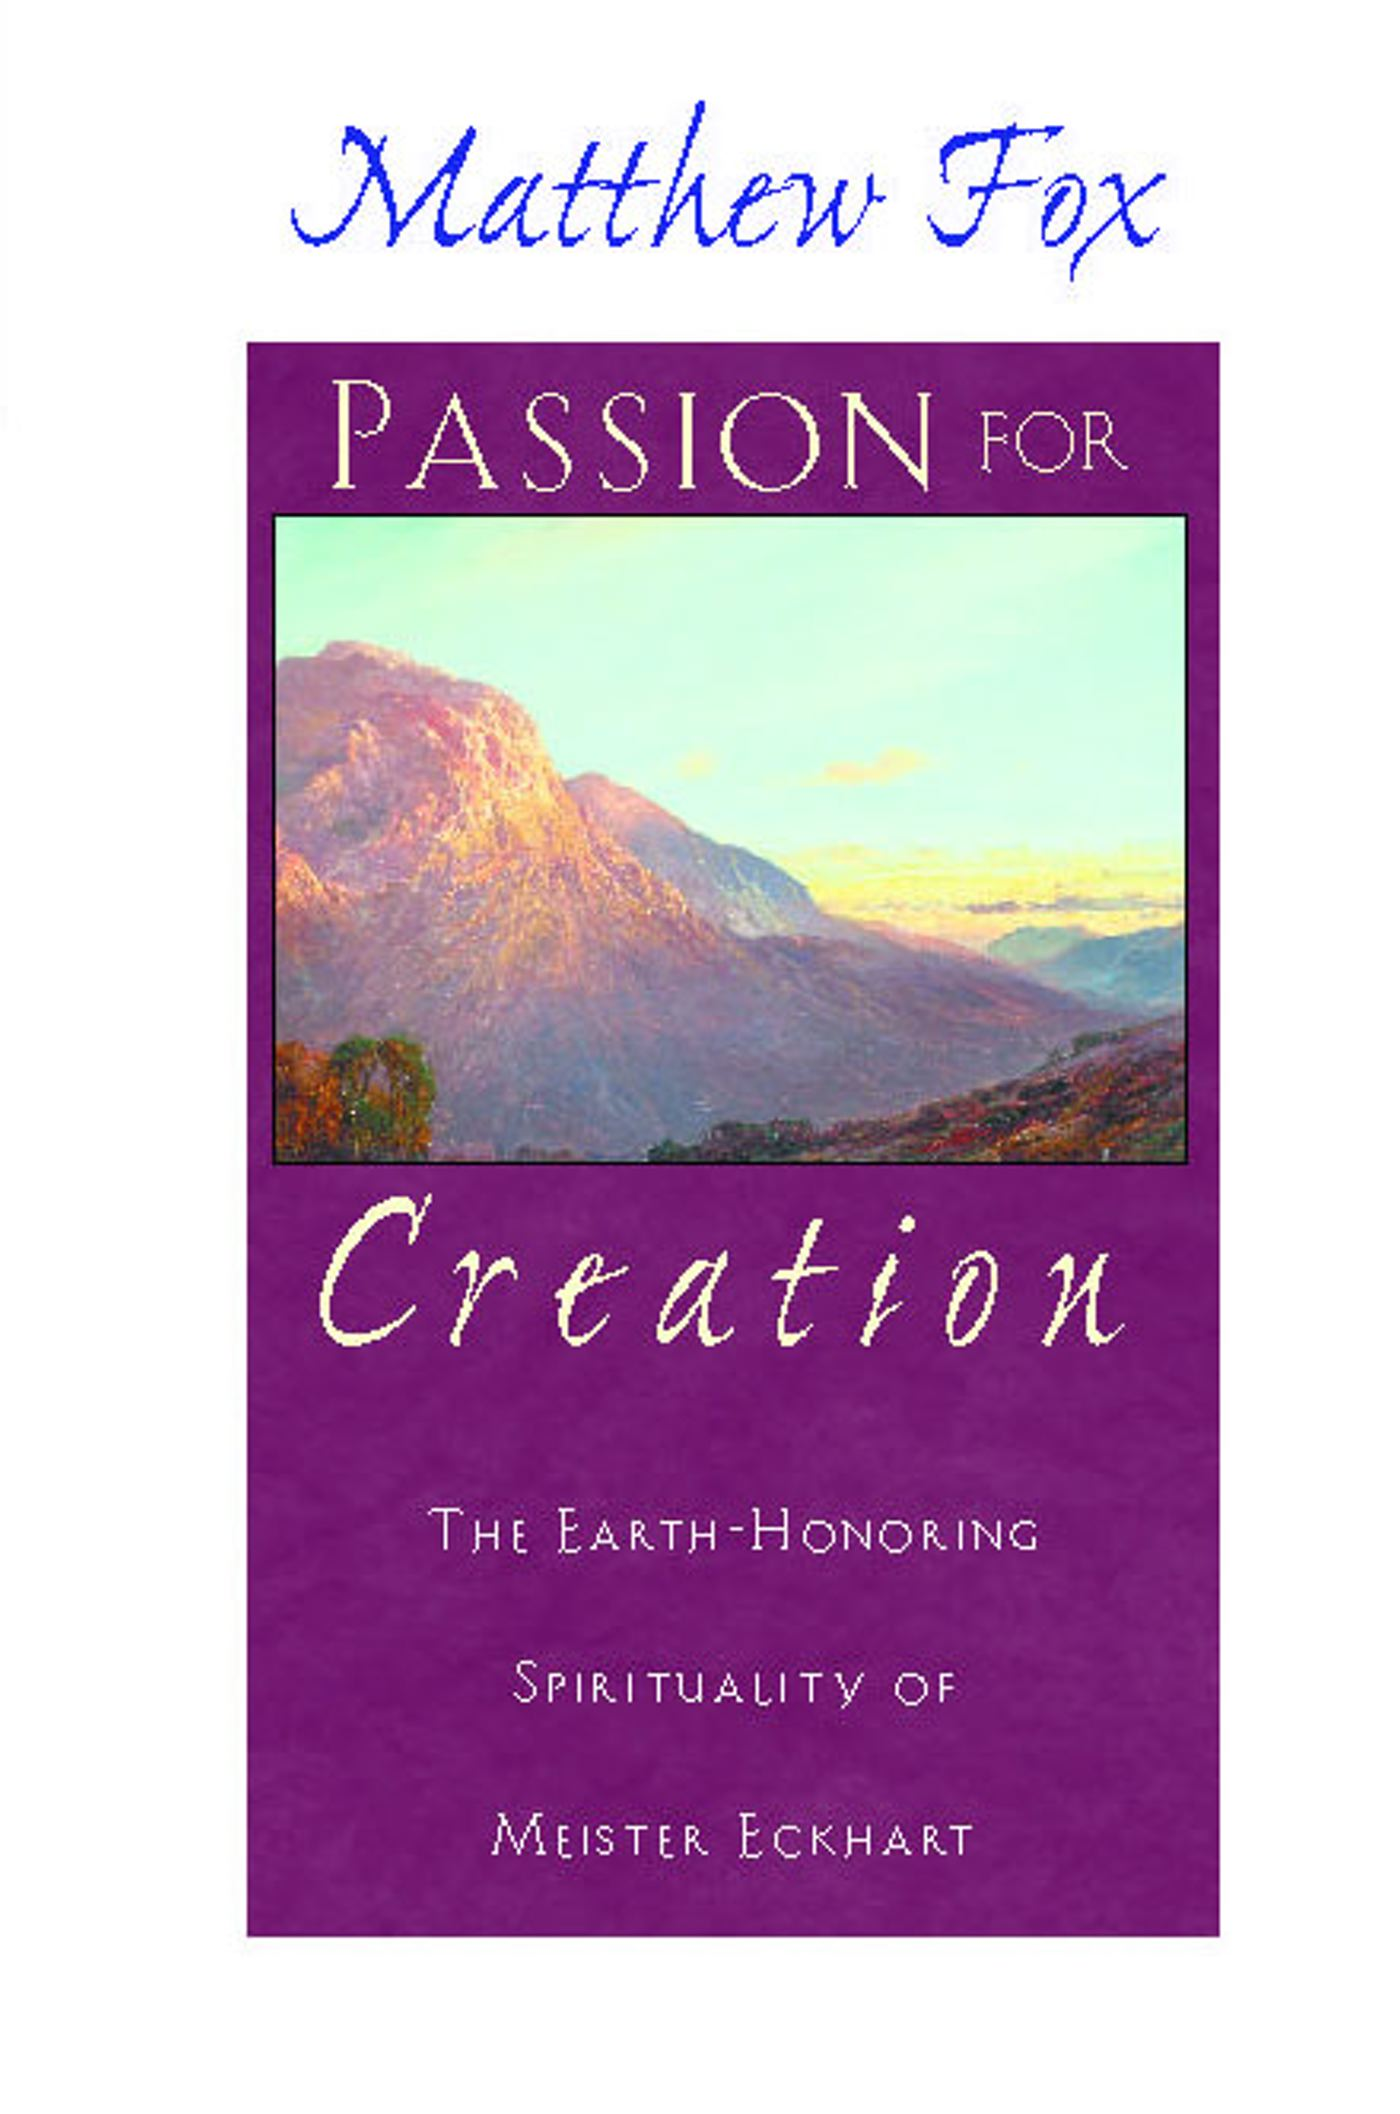 Passion for creation 9780892818013 hr